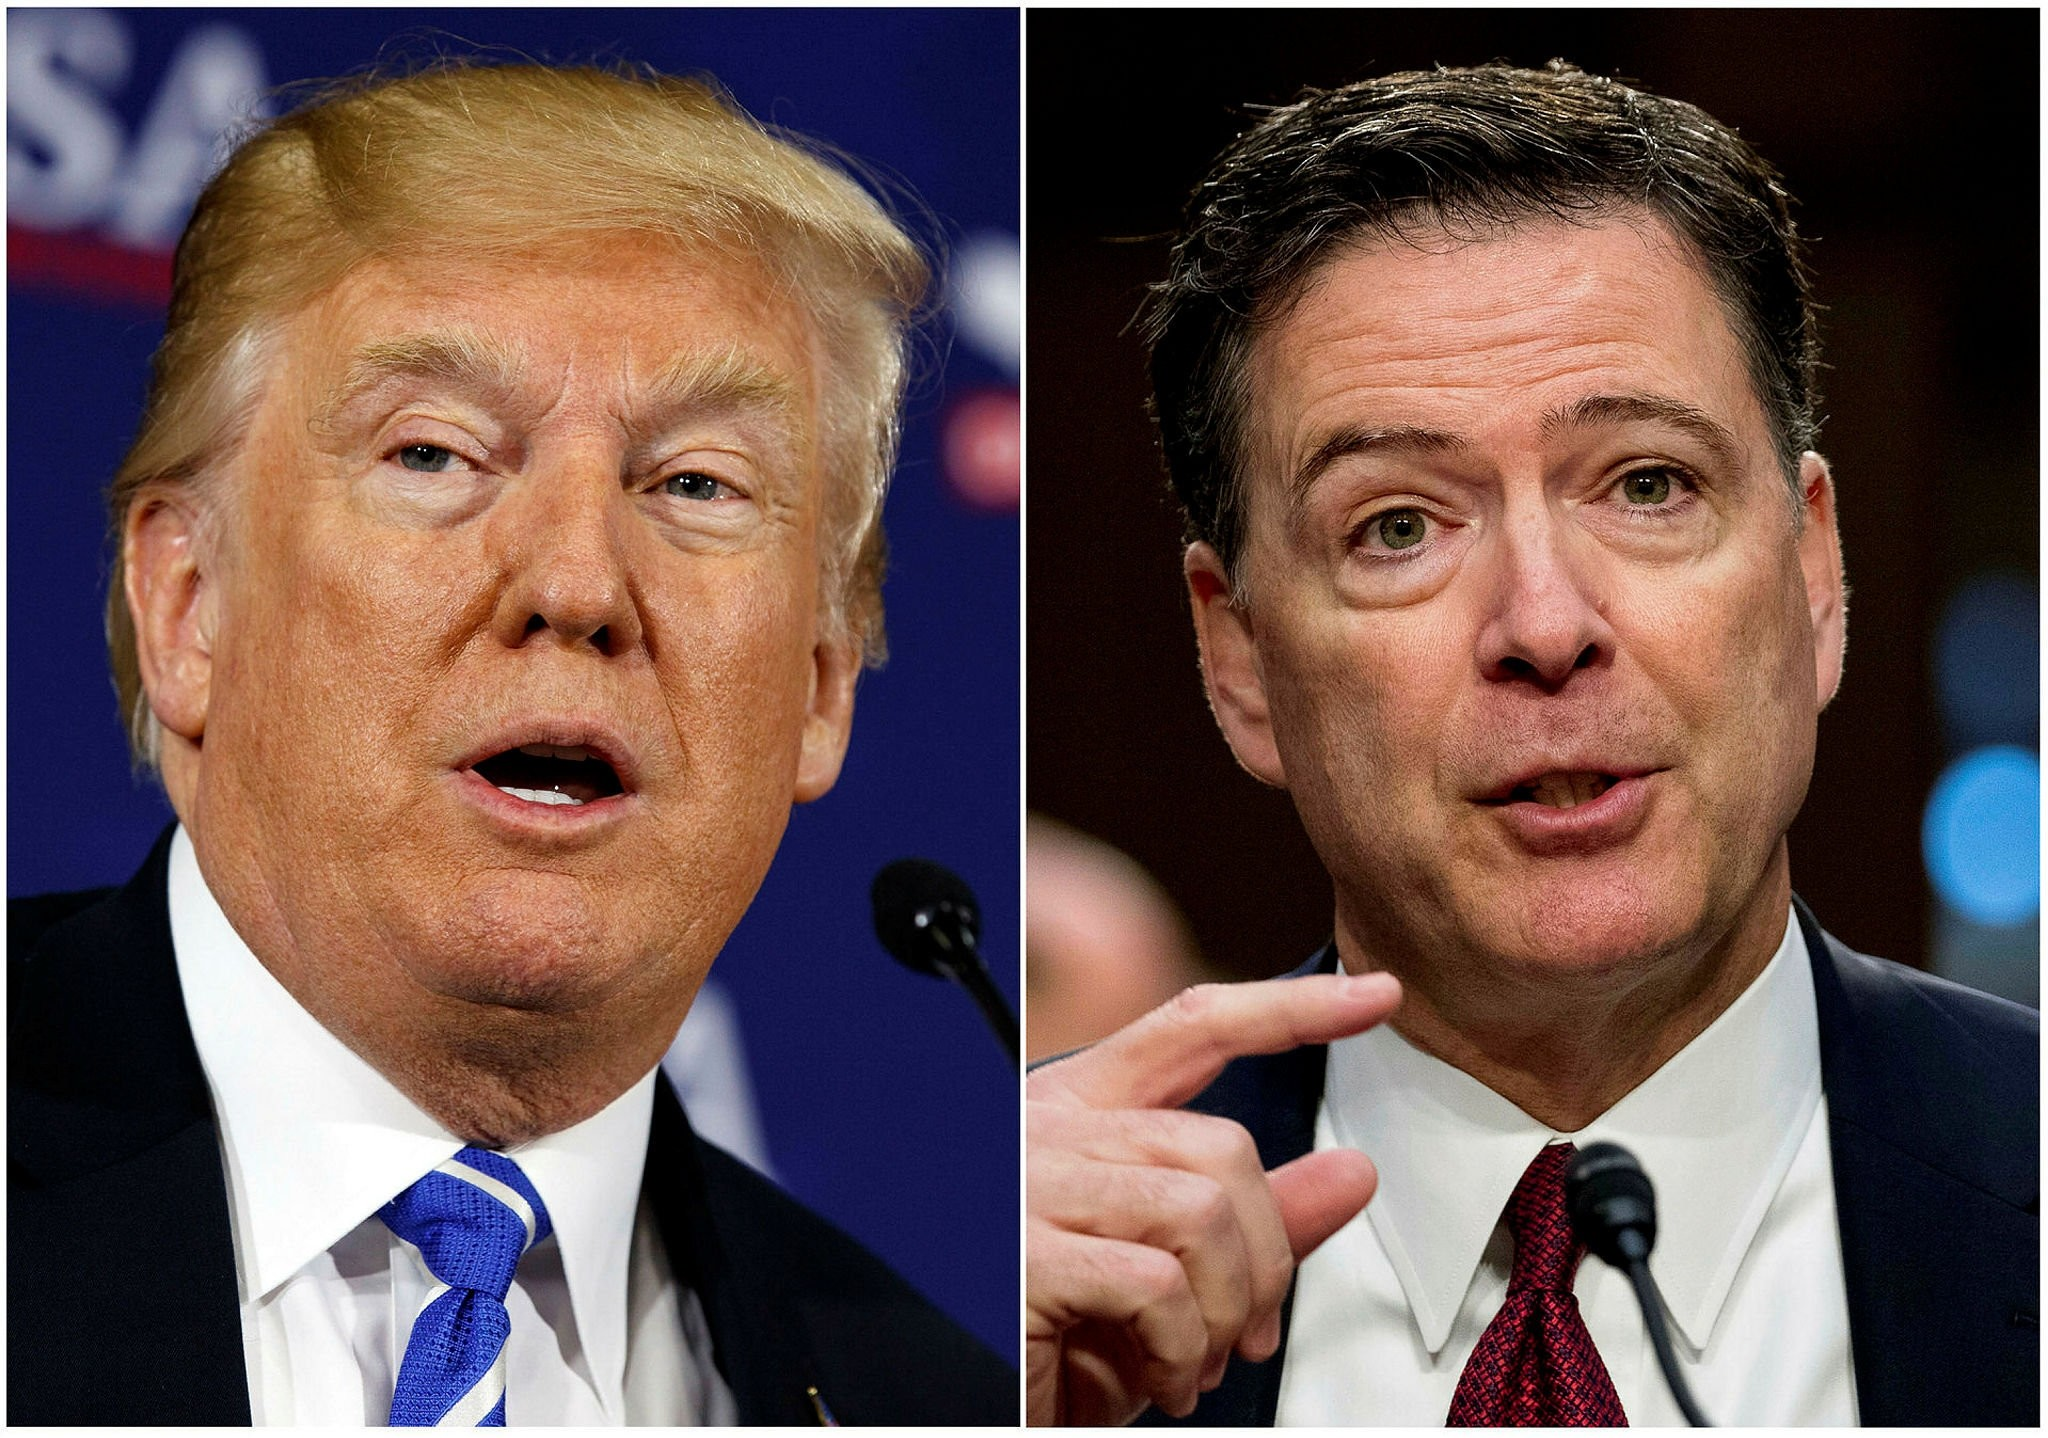 U.S. President Donald Trump (L) and Former FBI director James Comey.